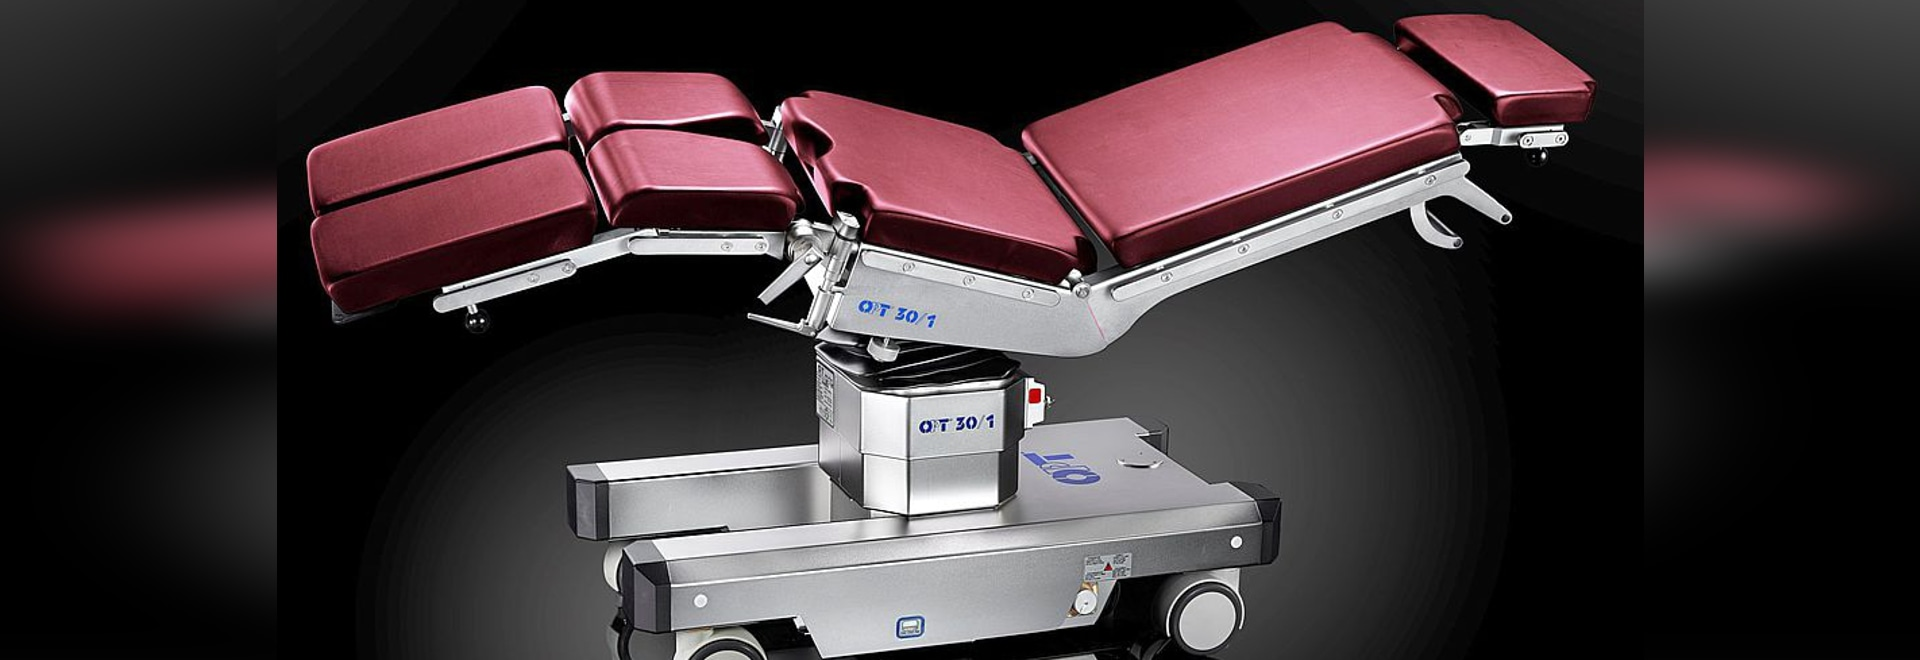 Excellent operating table for any surgery